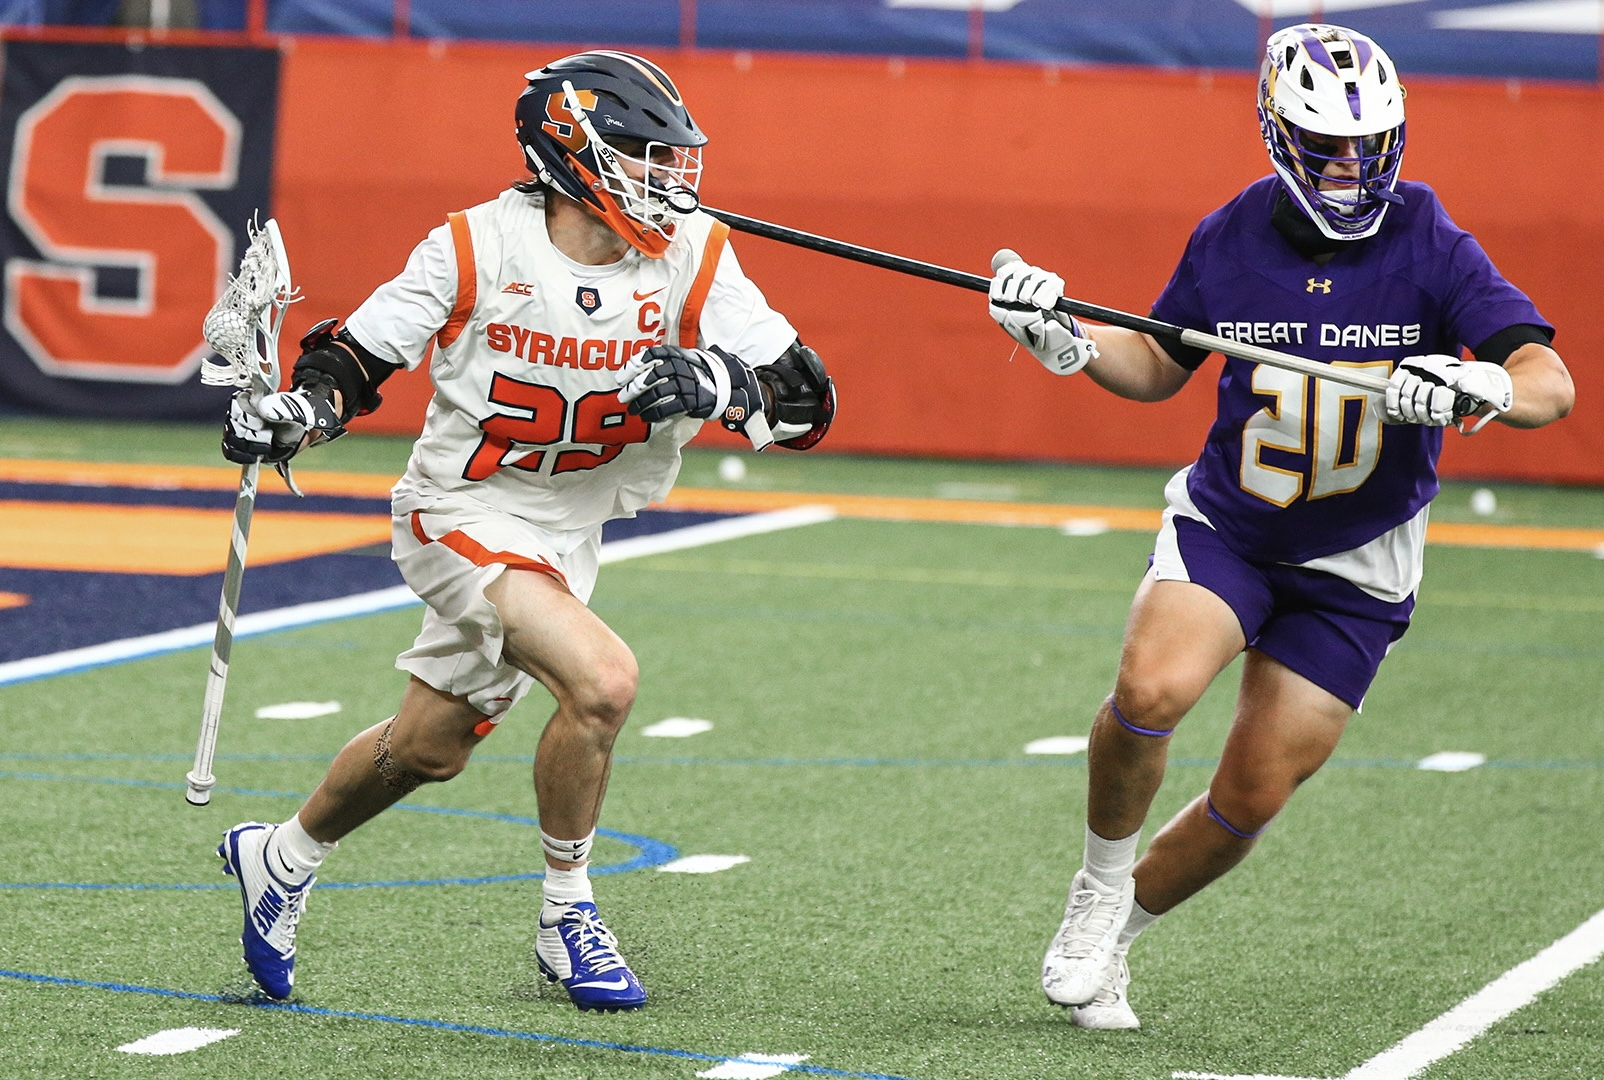 Syracuse Best UAlbany in Thursday Empire State Battle